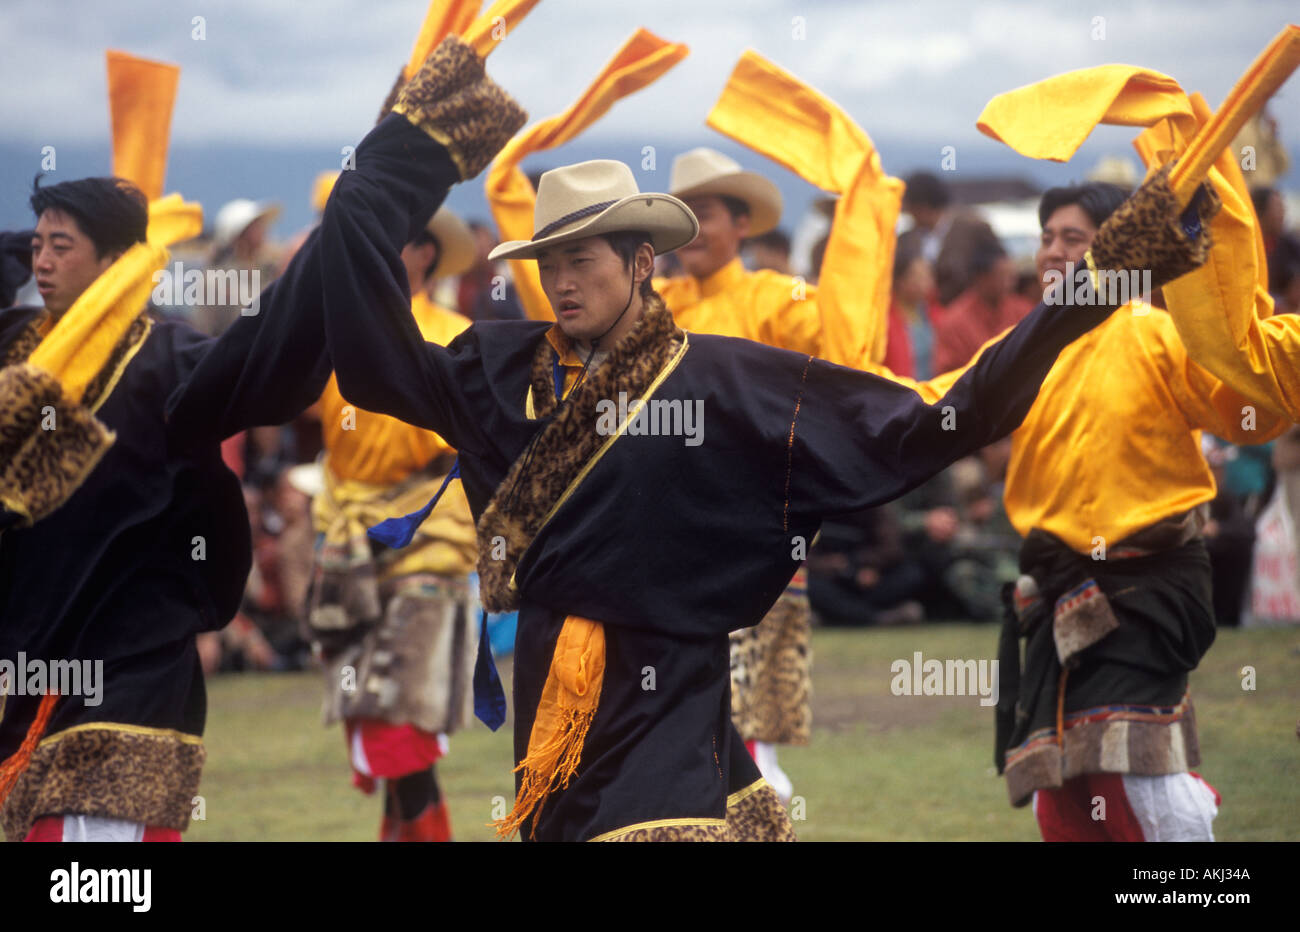 Dance troop with otter skin costumes represent a region of Kham Litang Horse Festival Sichuan Province China - Stock Image